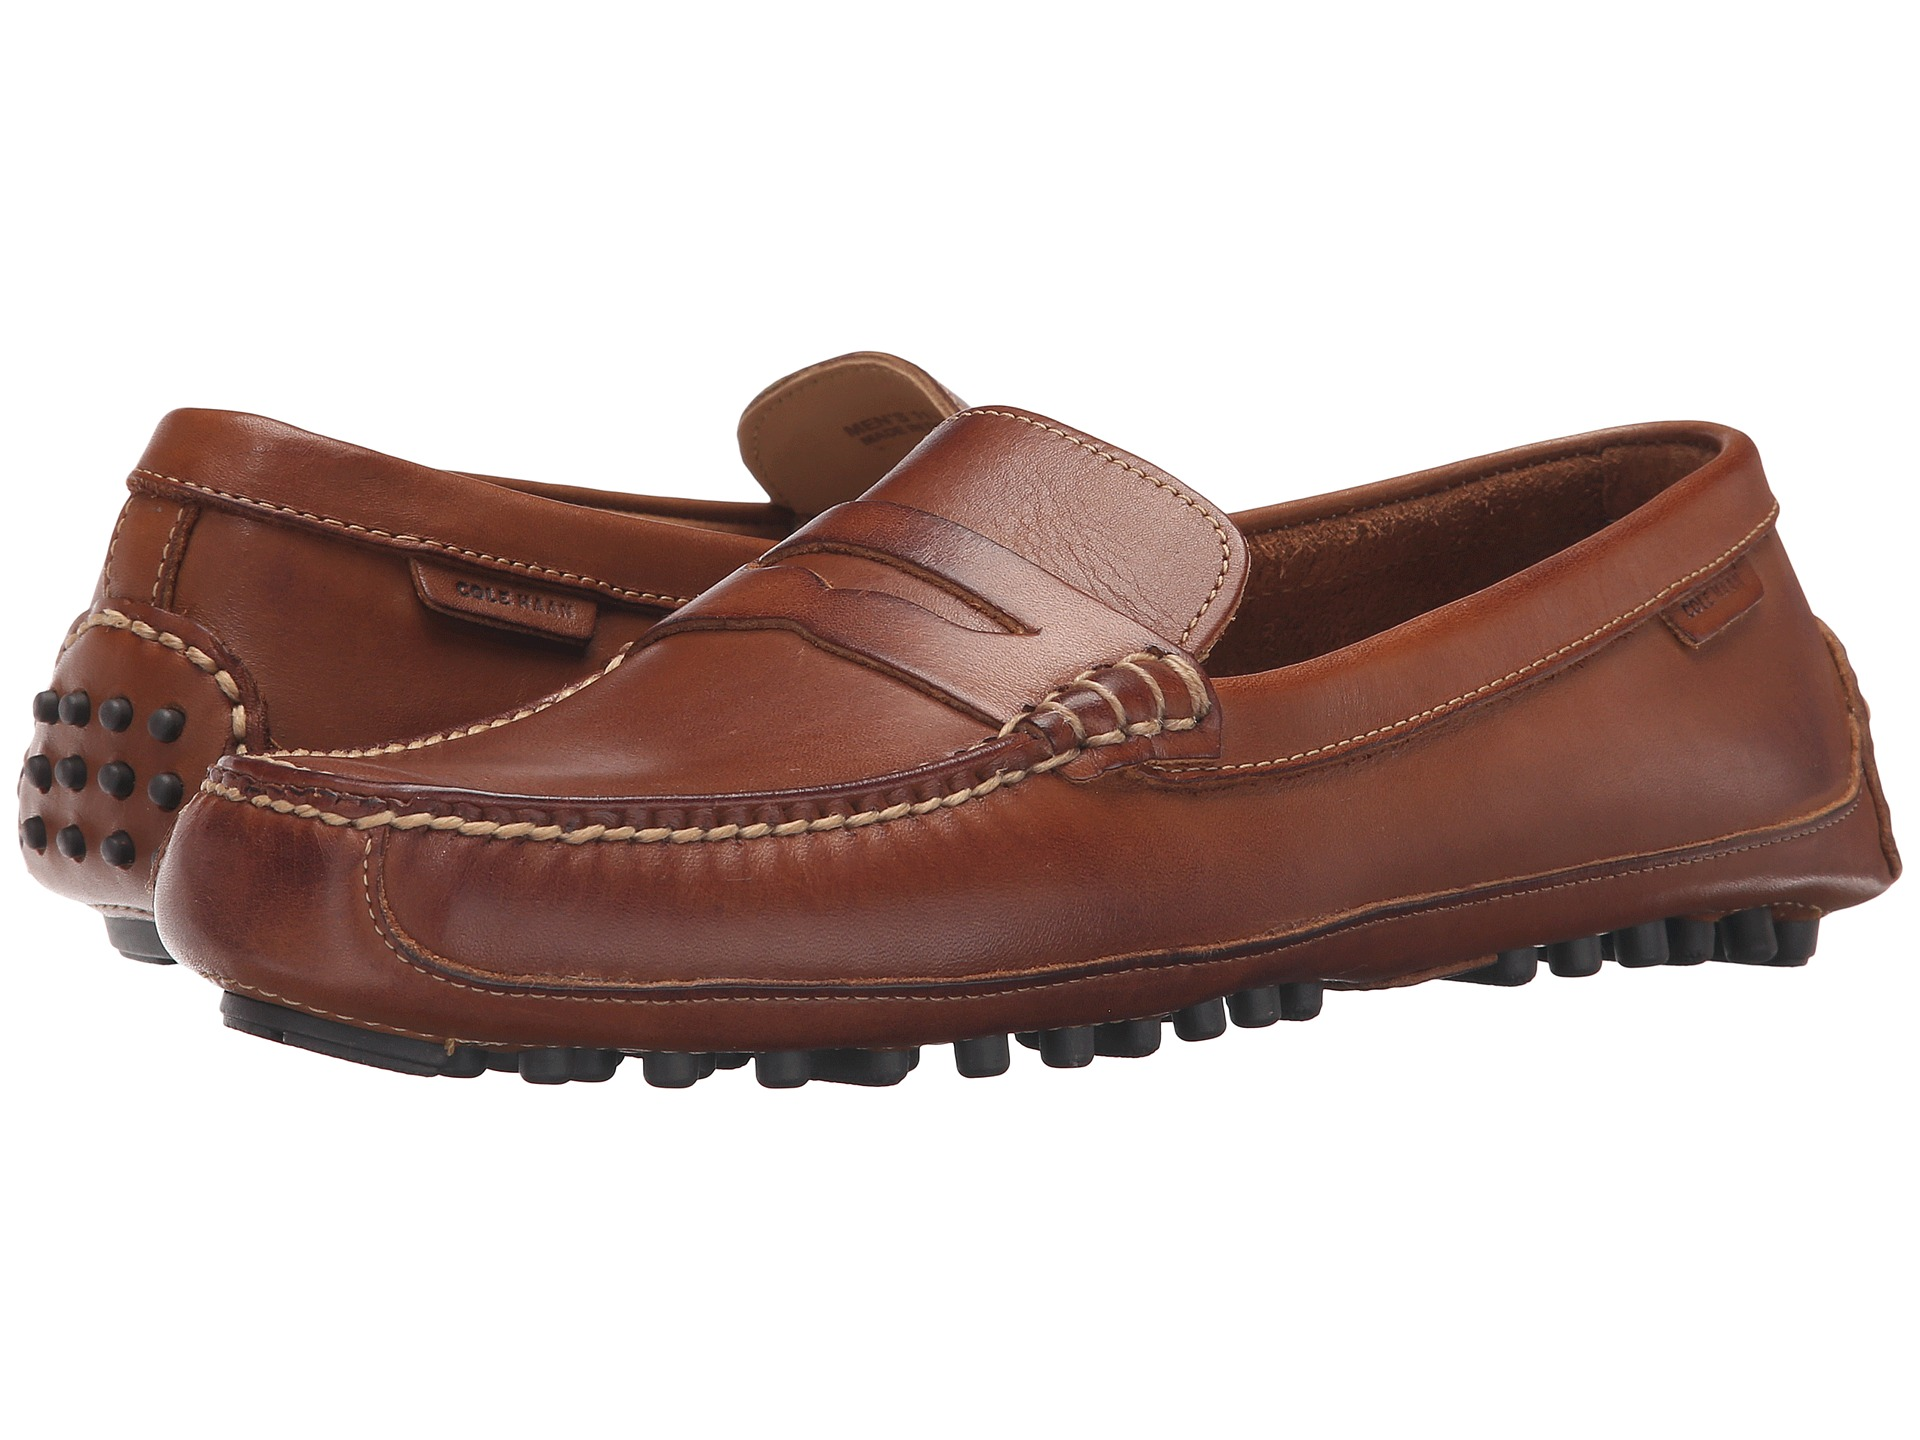 Cole Haan Nike Air Shoes Reviews